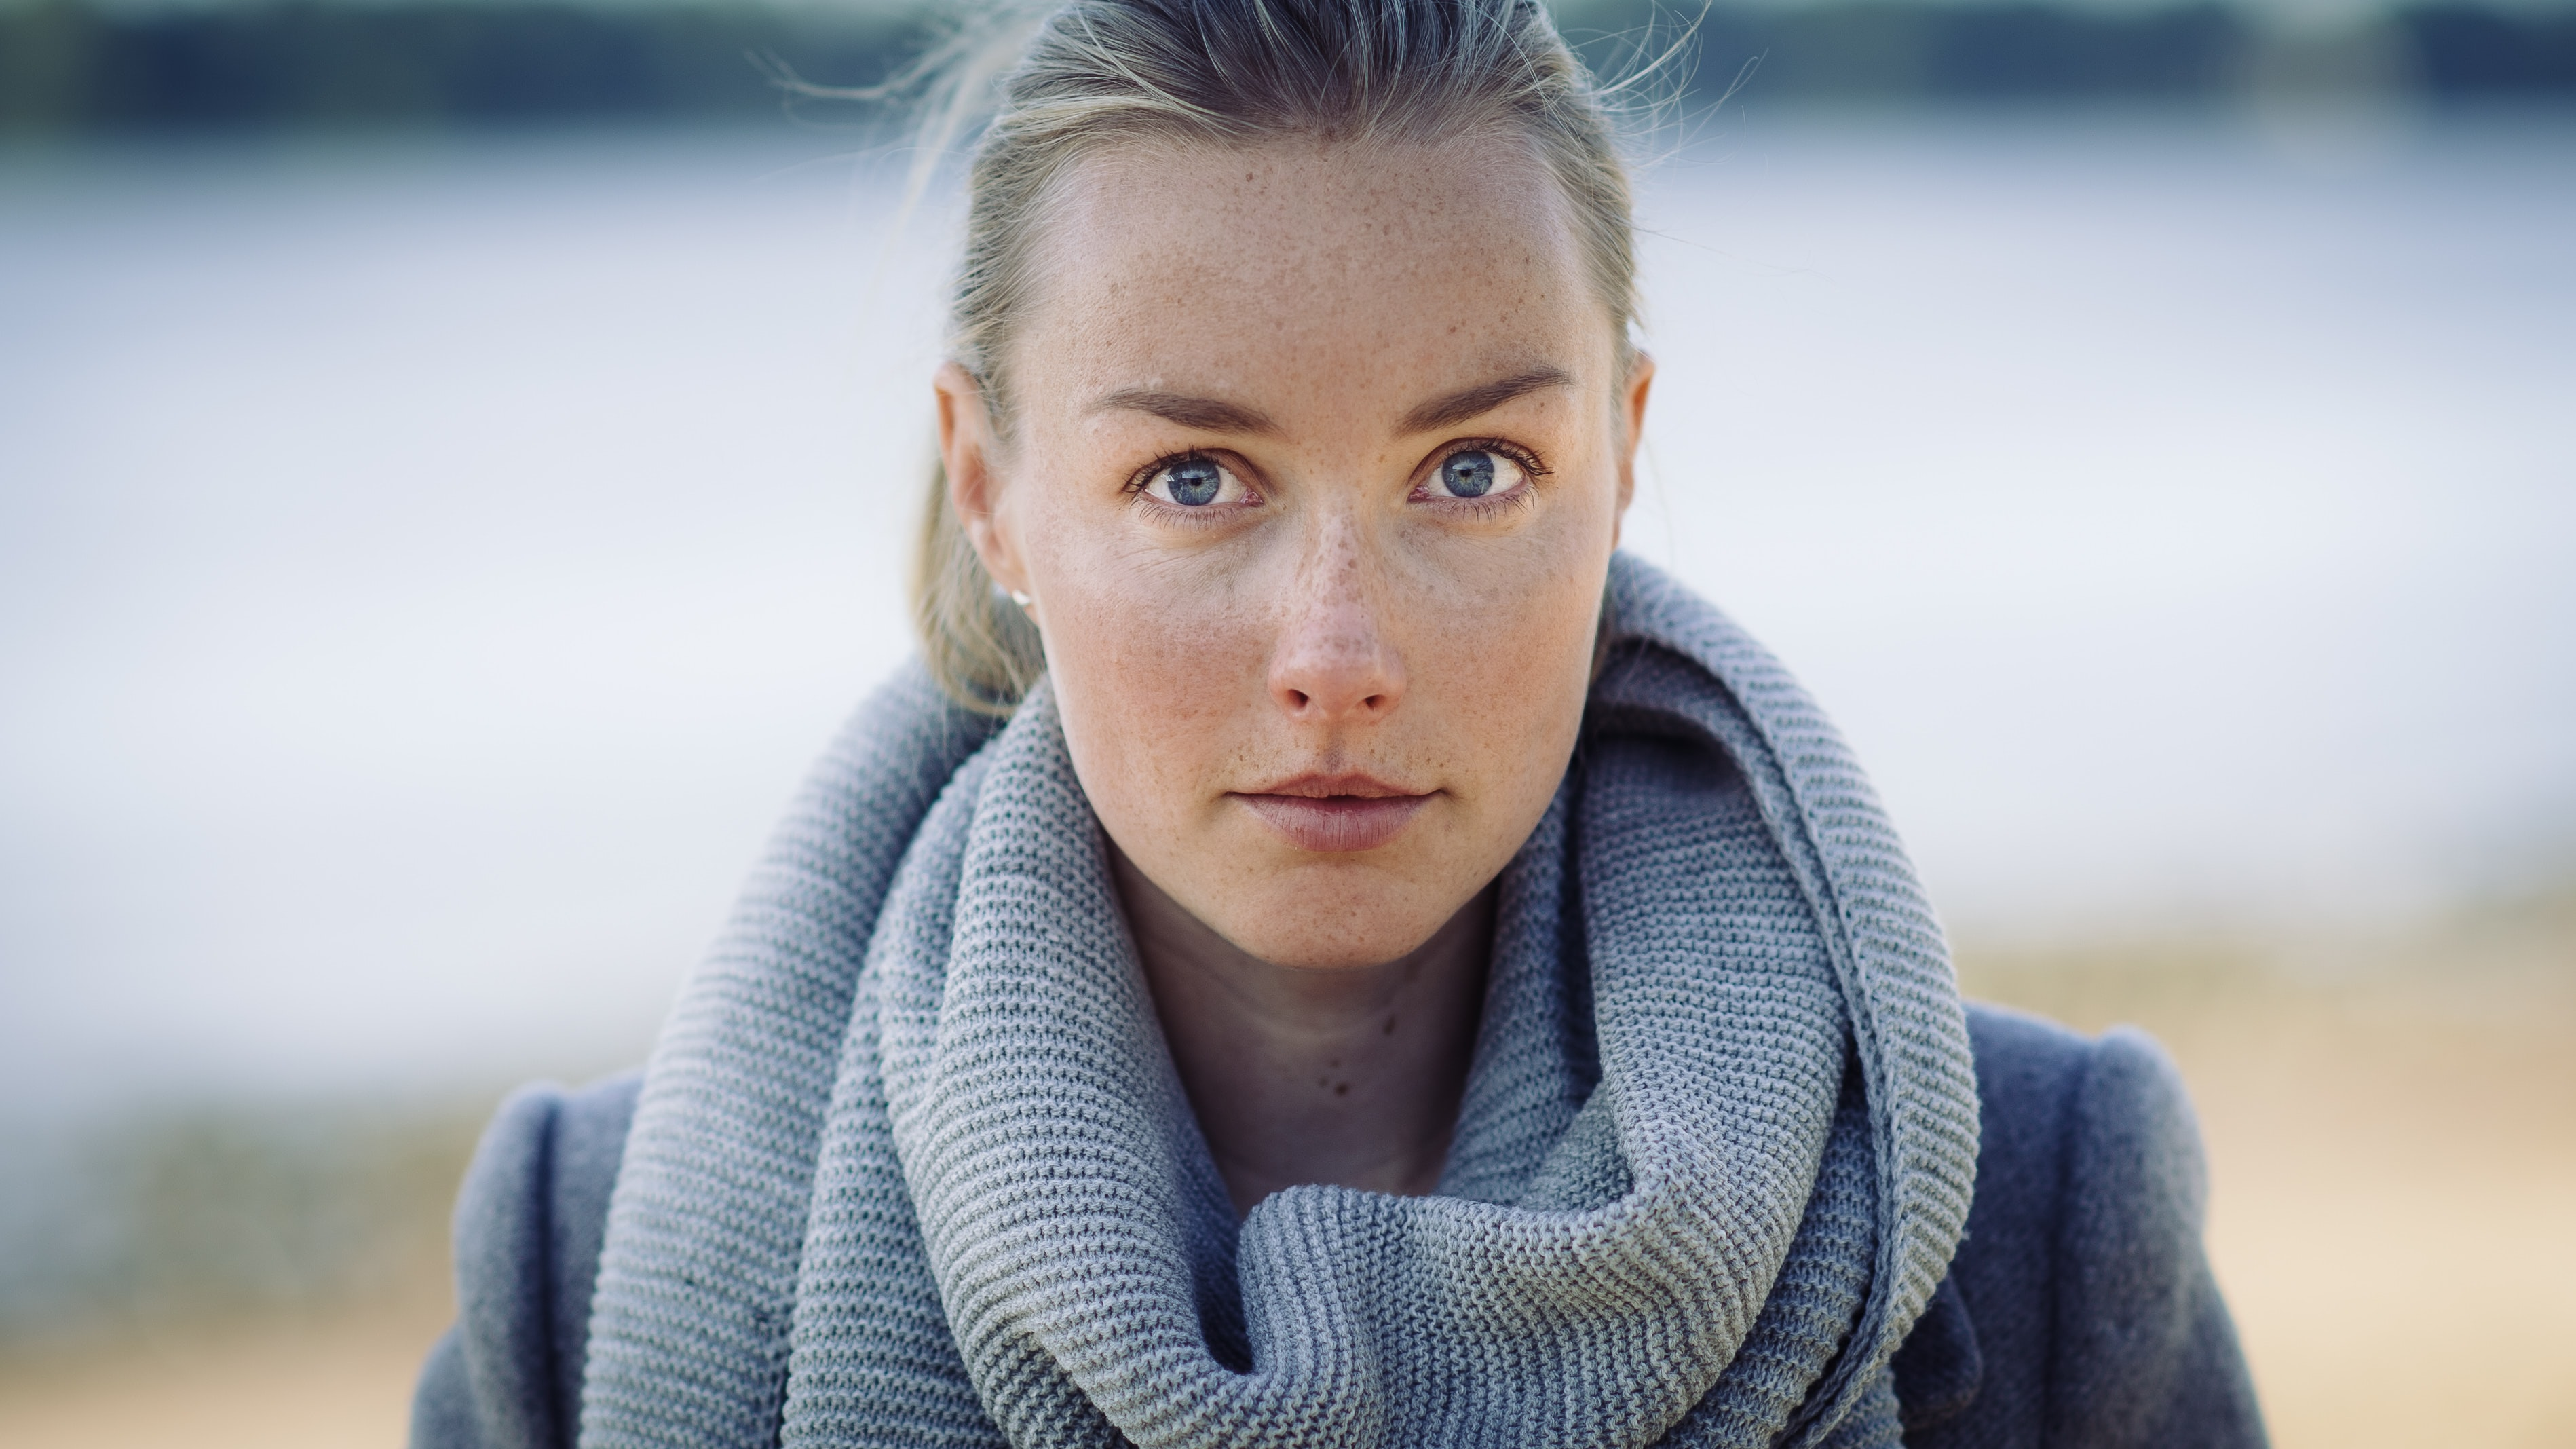 selective focus photo of woman wearing gray scarf